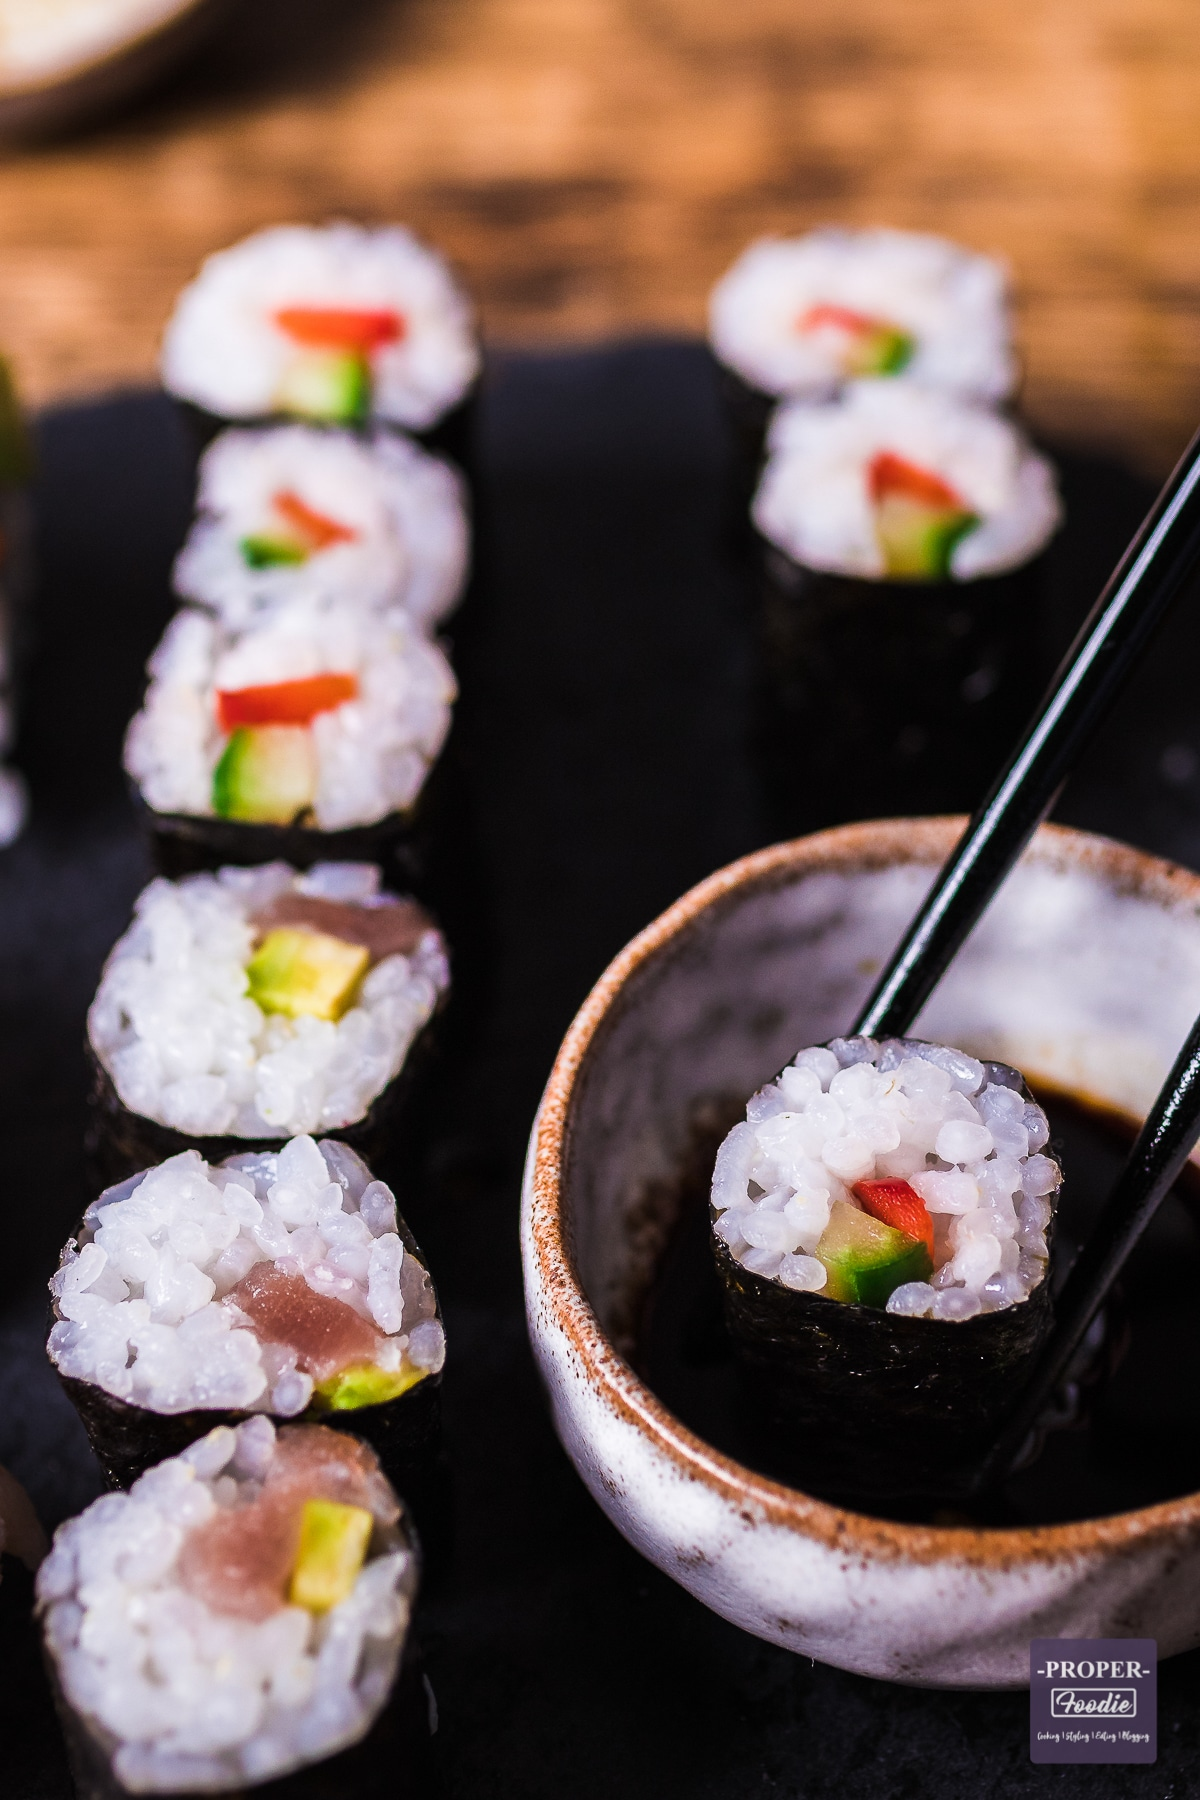 maki sushi on black slate with one piece being dipped in soy sauce